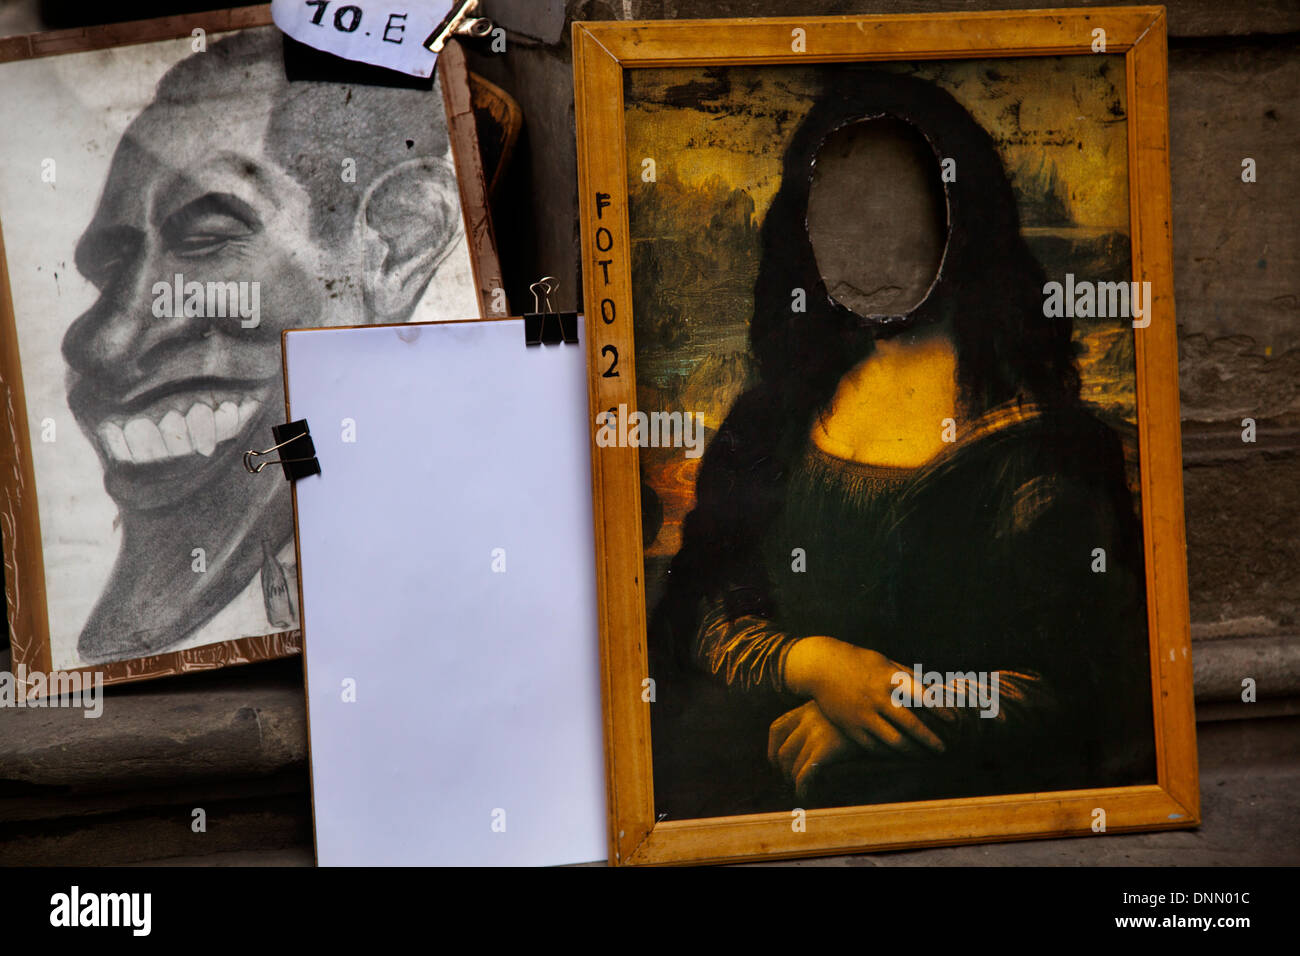 Portraits & photo booth with images of Obama & Mona Lisa outside the Uffizi gallery - Stock Image